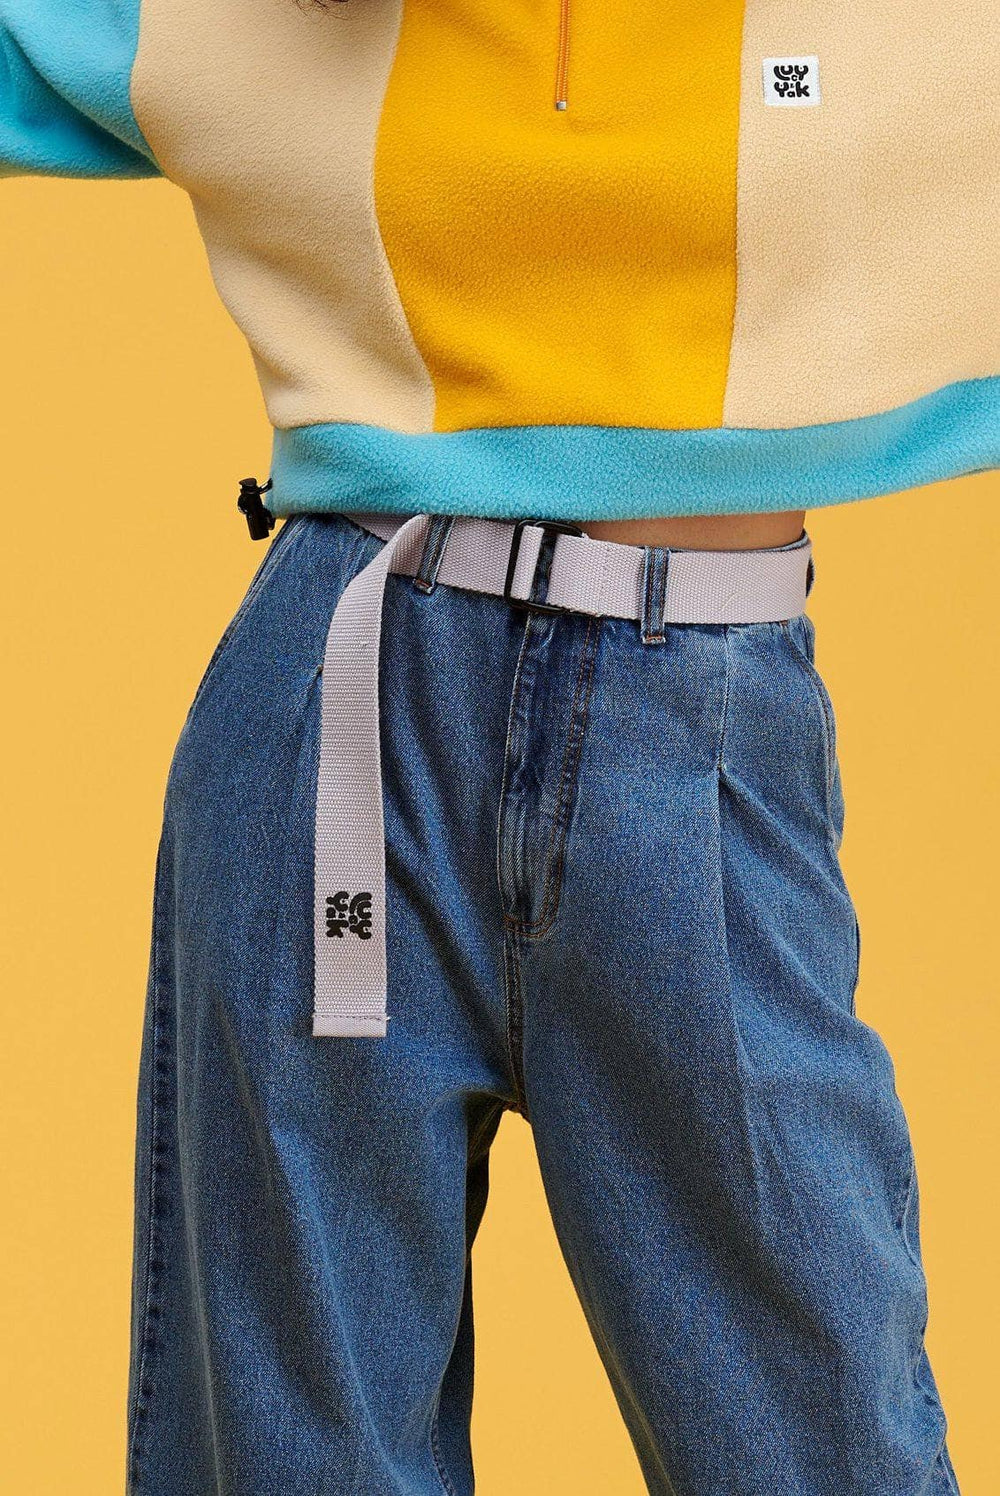 Lucy & Yak Belt The Sundaze Collection - 'Flynn' Woven Cotton Belt in Iris